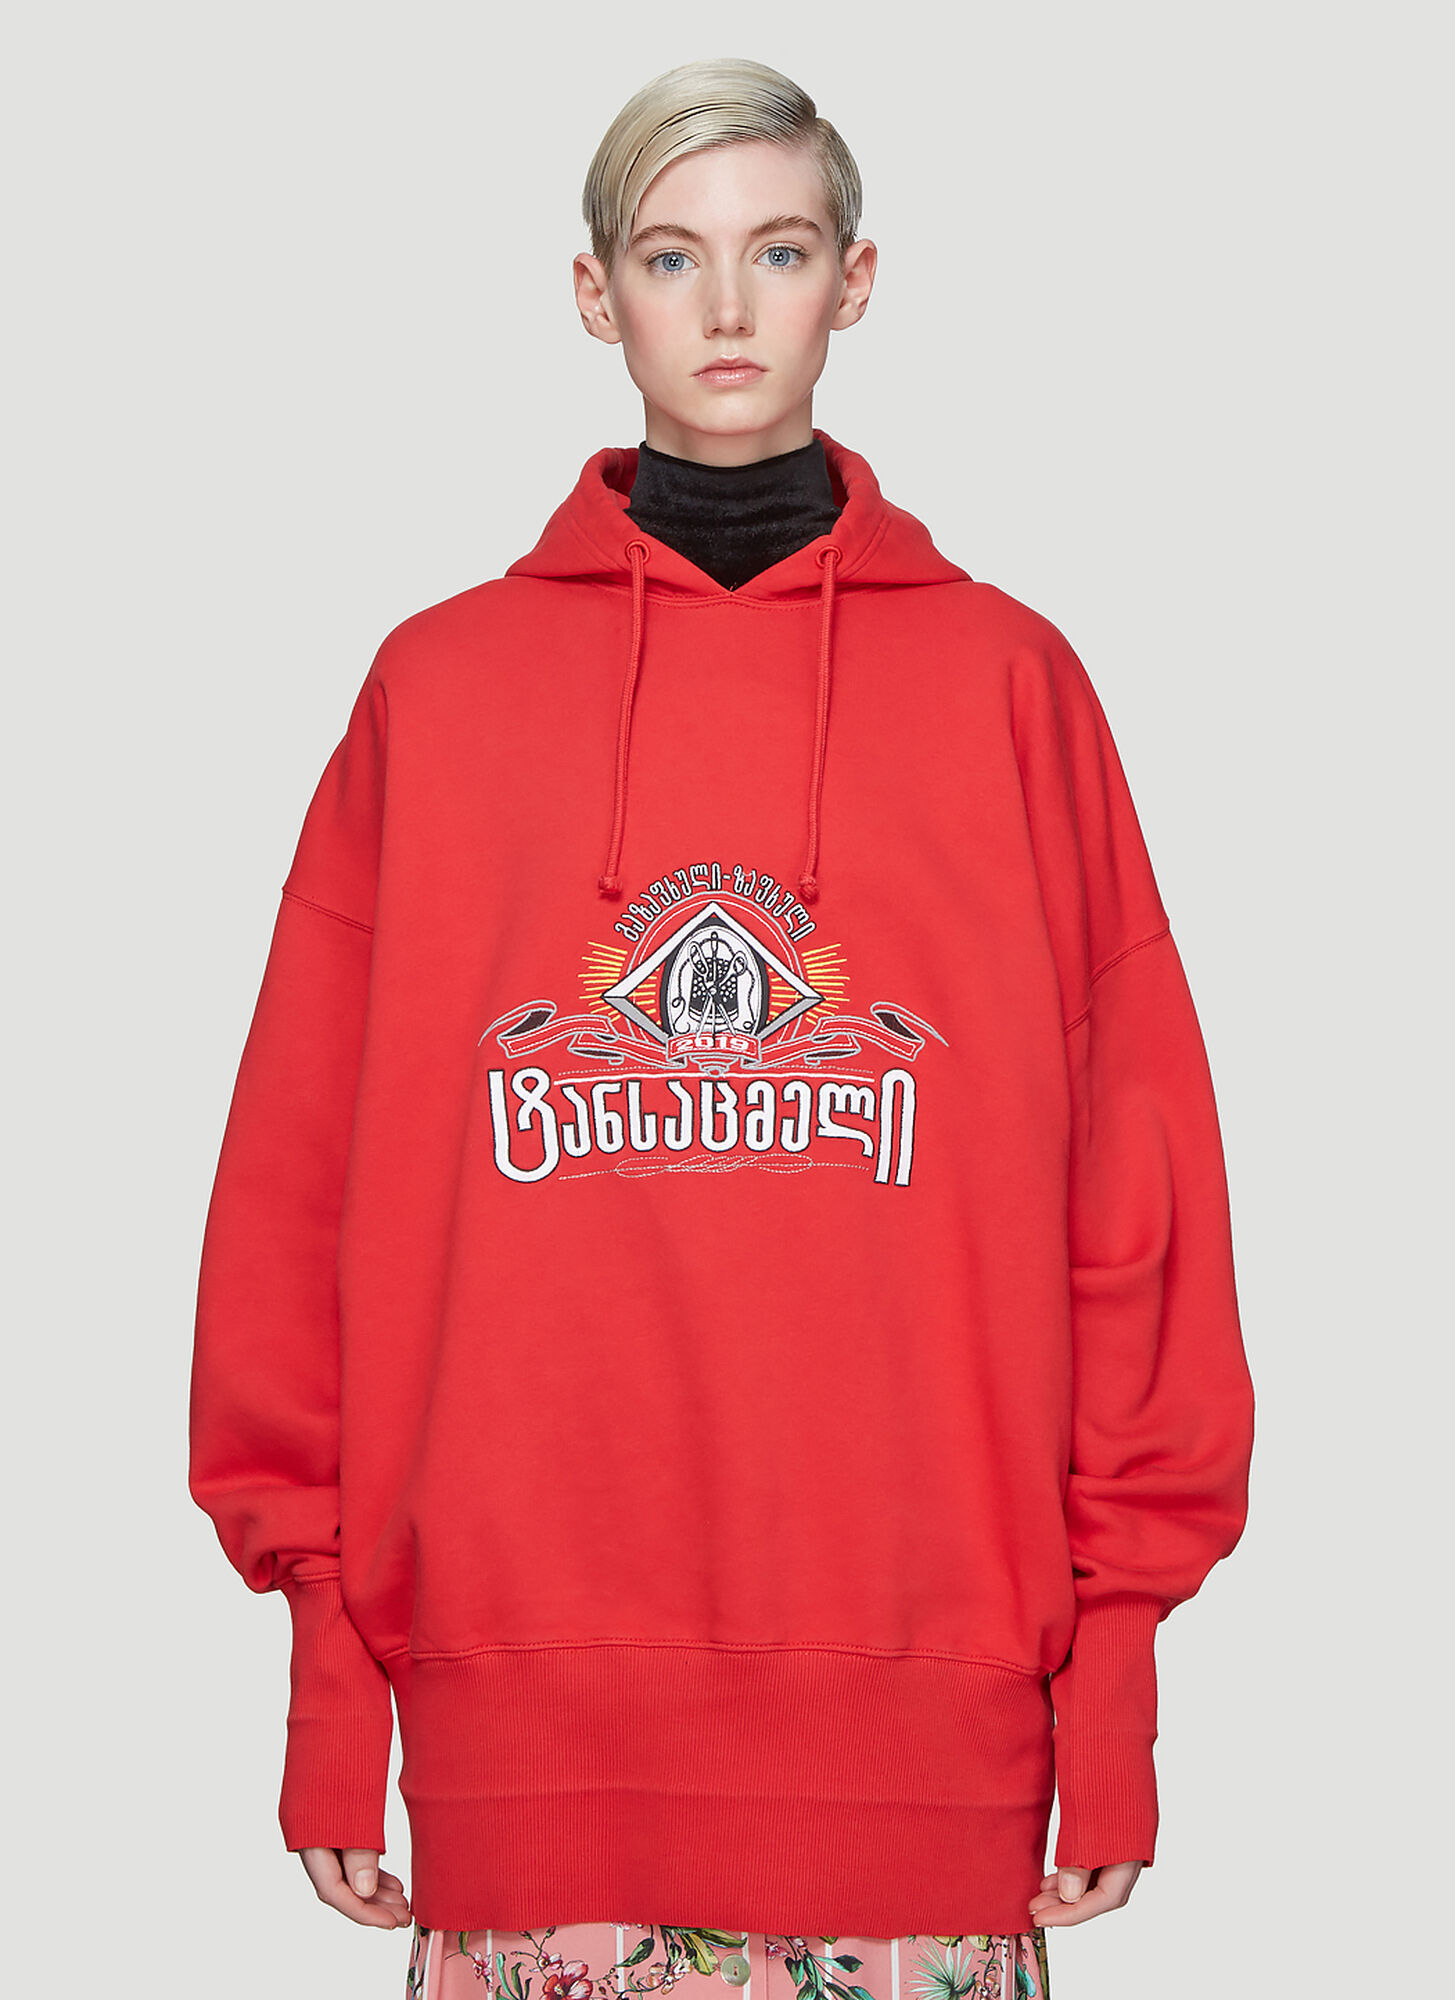 Vetements Hooded Secret Society Sweatshirt in Red